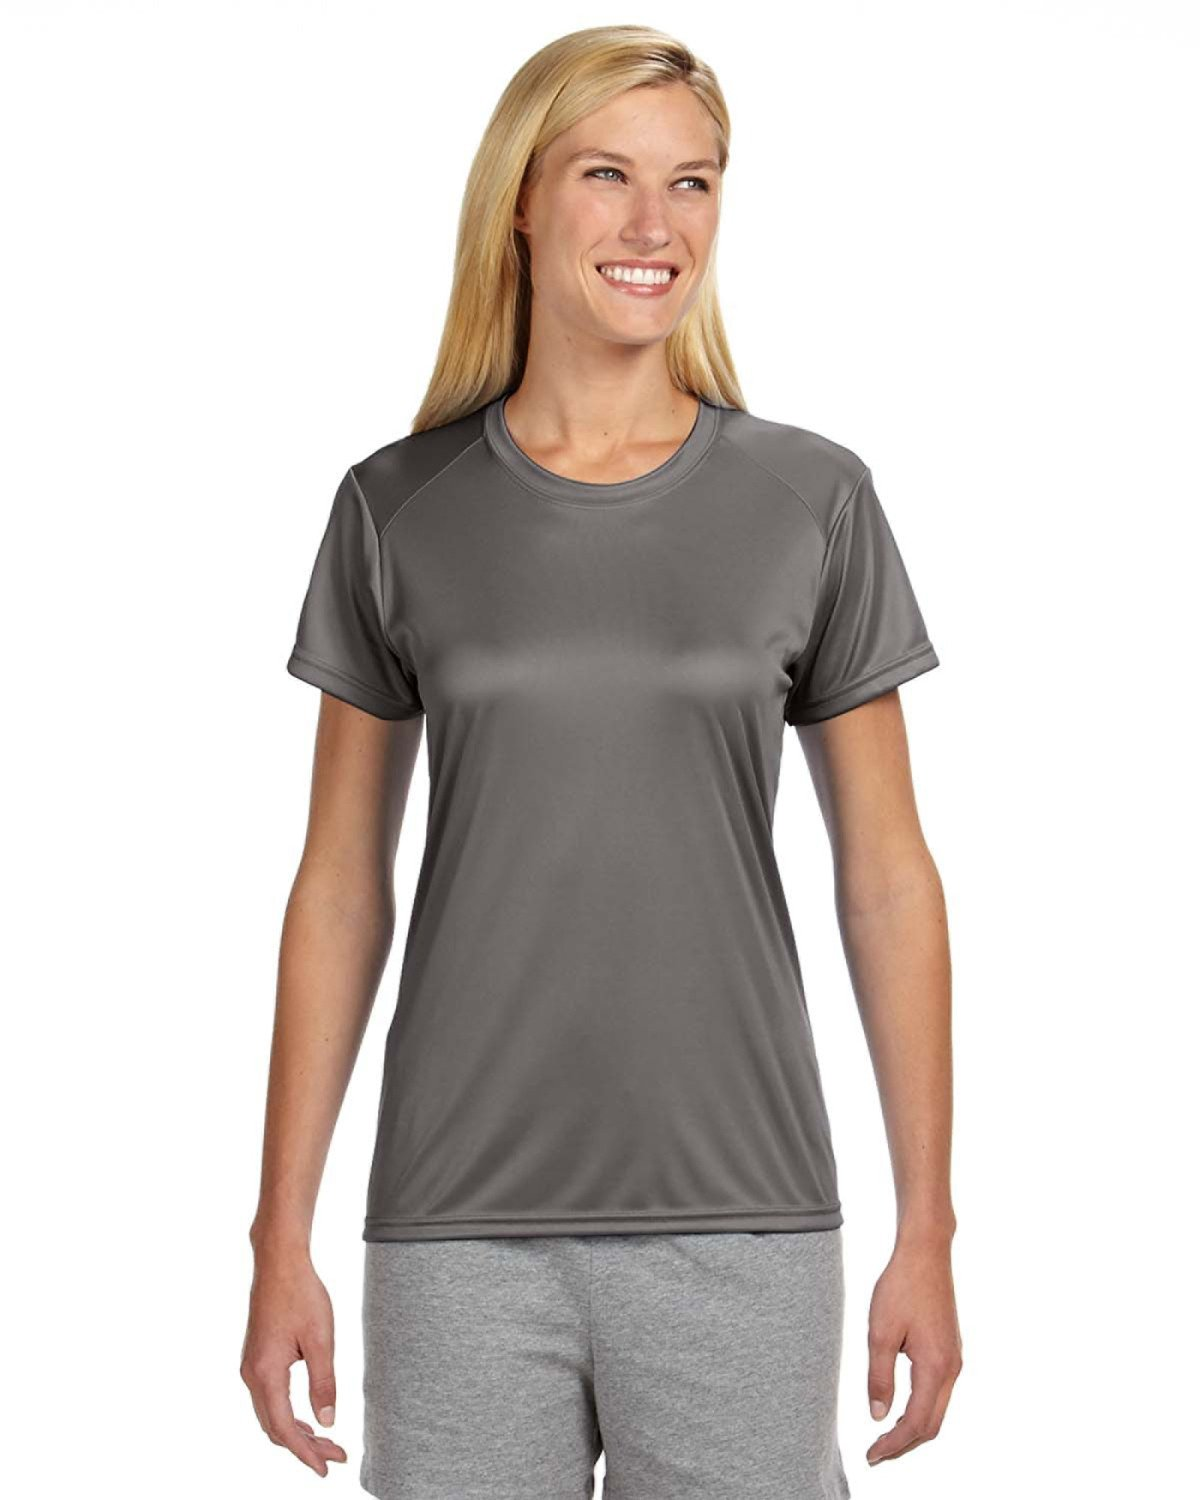 A4 Ladies' Cooling Performance T-Shirt GRAPHITE